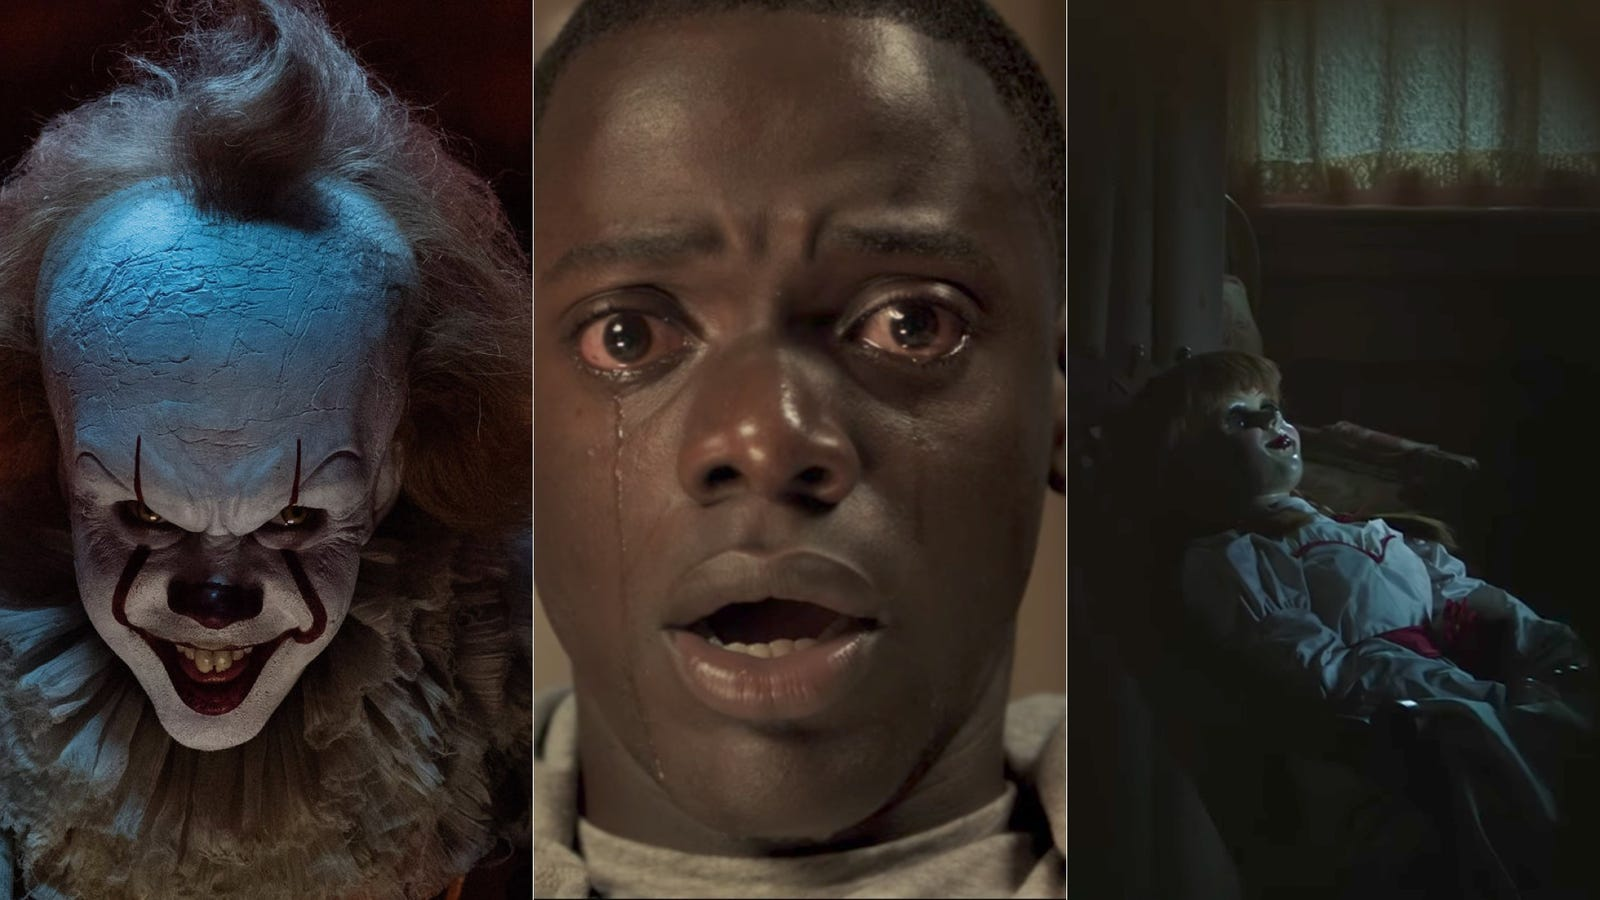 Horror Films Had Their Best Year Ever. Must Be Nice.